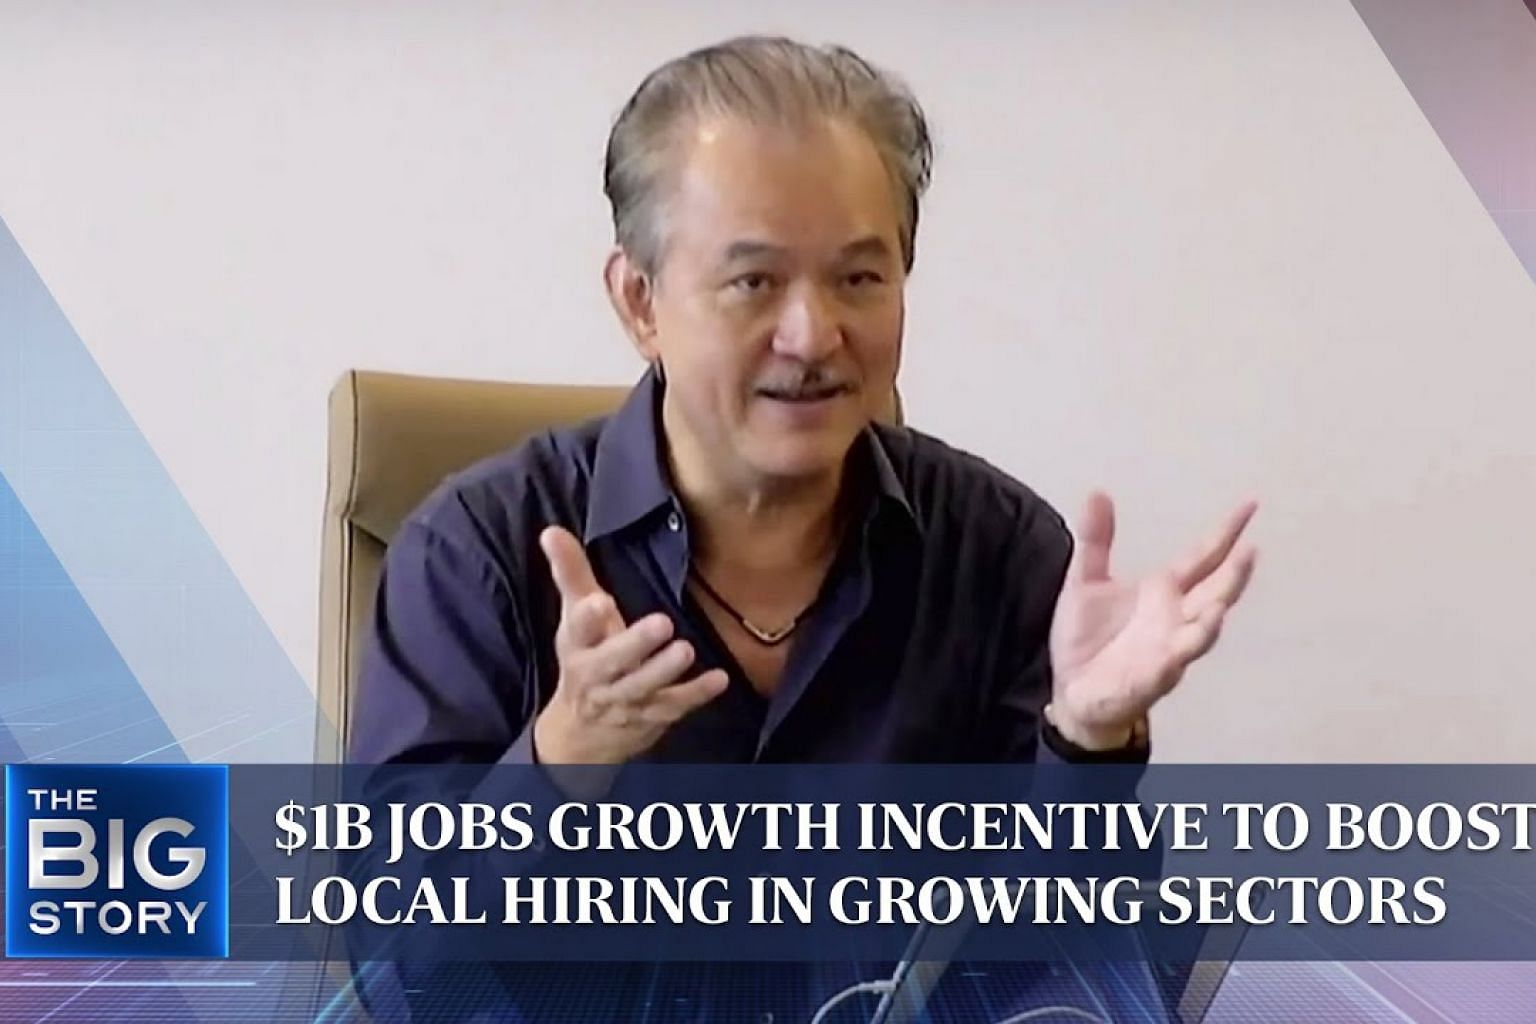 $1B Jobs Growth Incentive to boost local hiring in growing sectors   THE BIG STORY